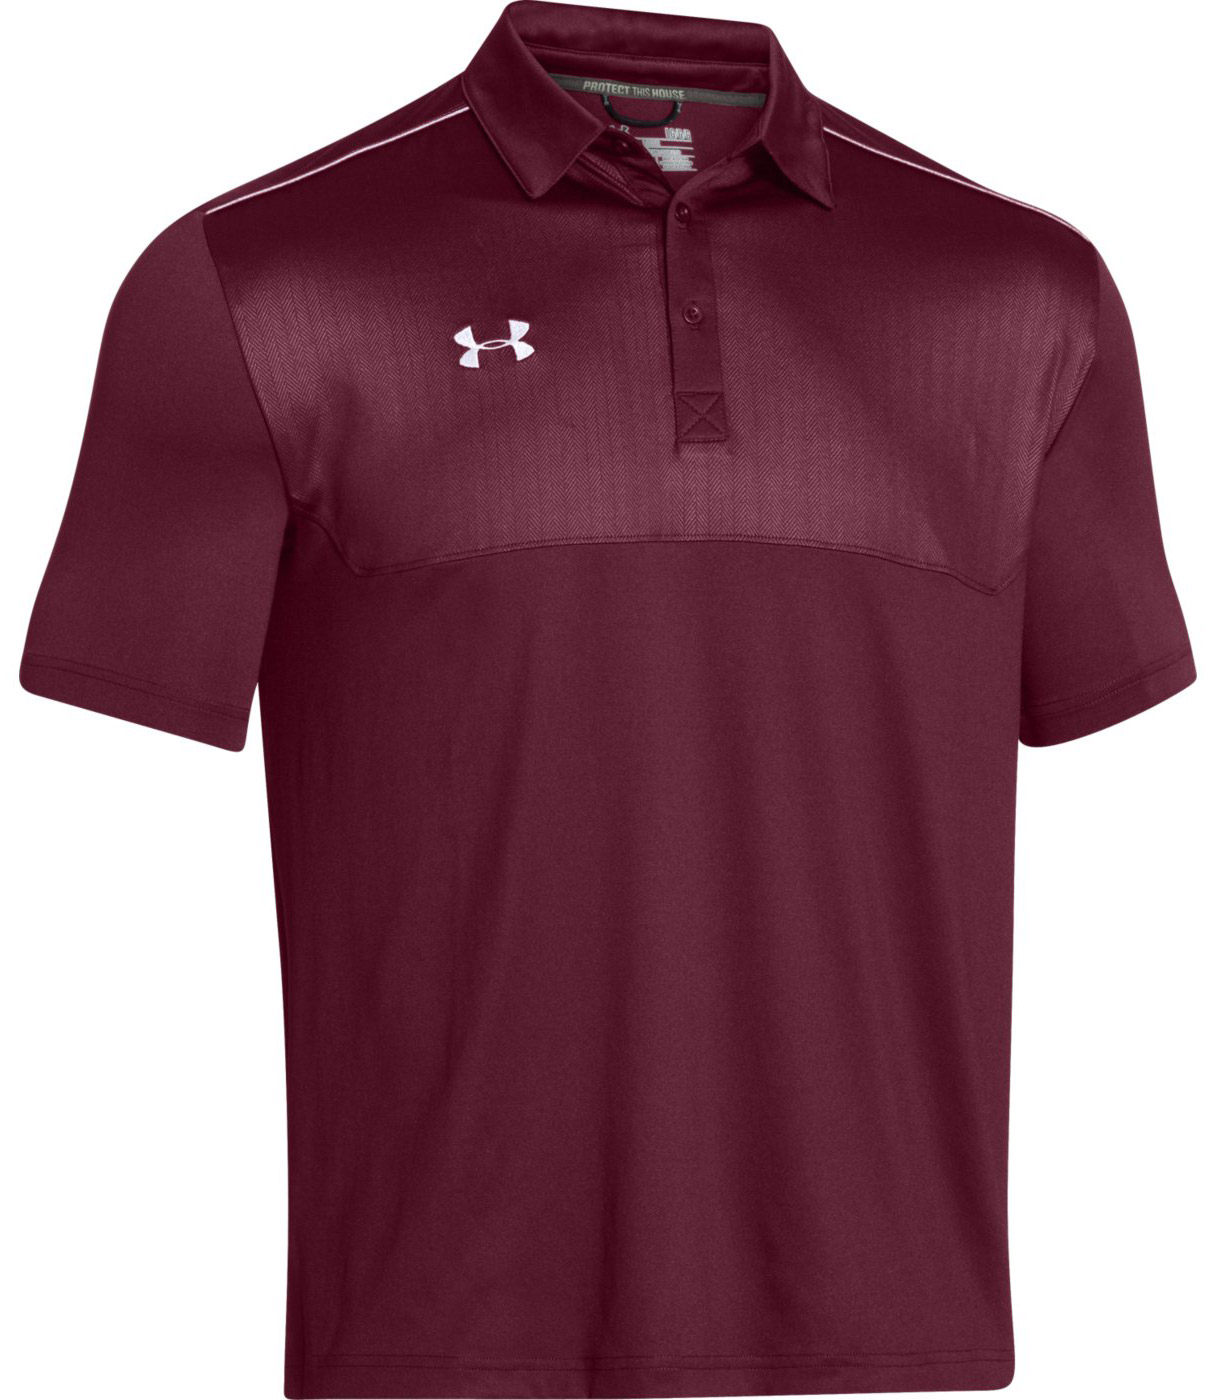 Under armour ultimate men 39 s polo shirt for Under armour company shirts